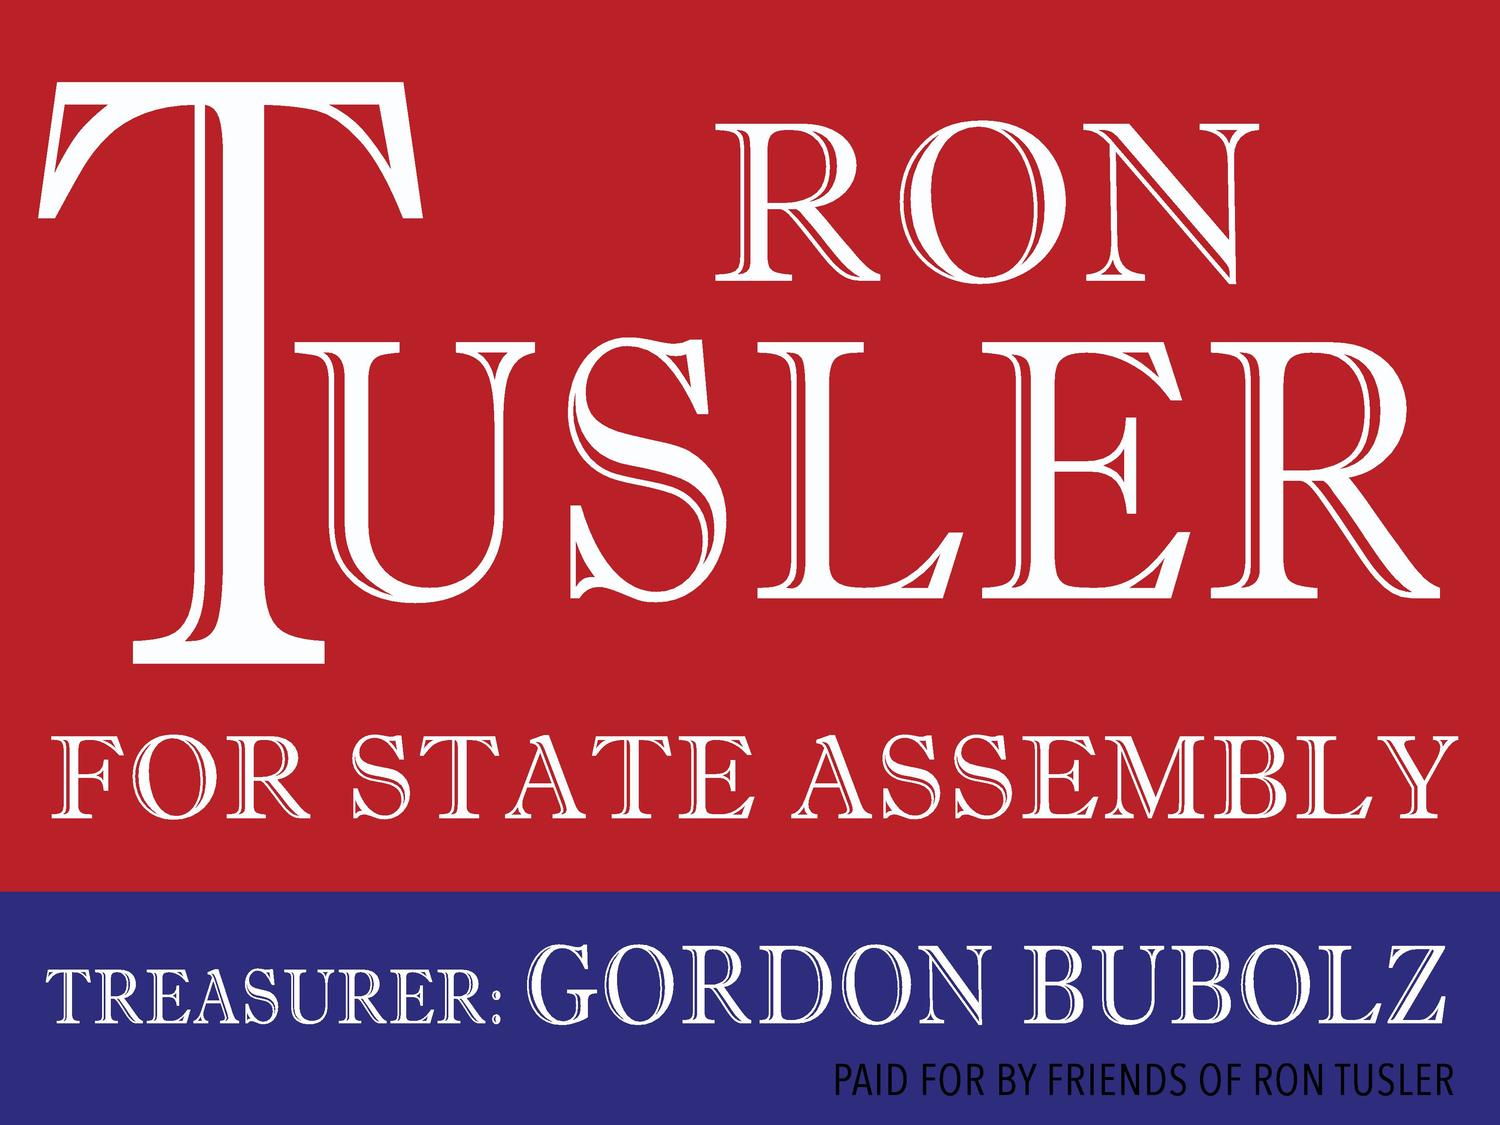 Ron Tusler Wisconsin State Assembly